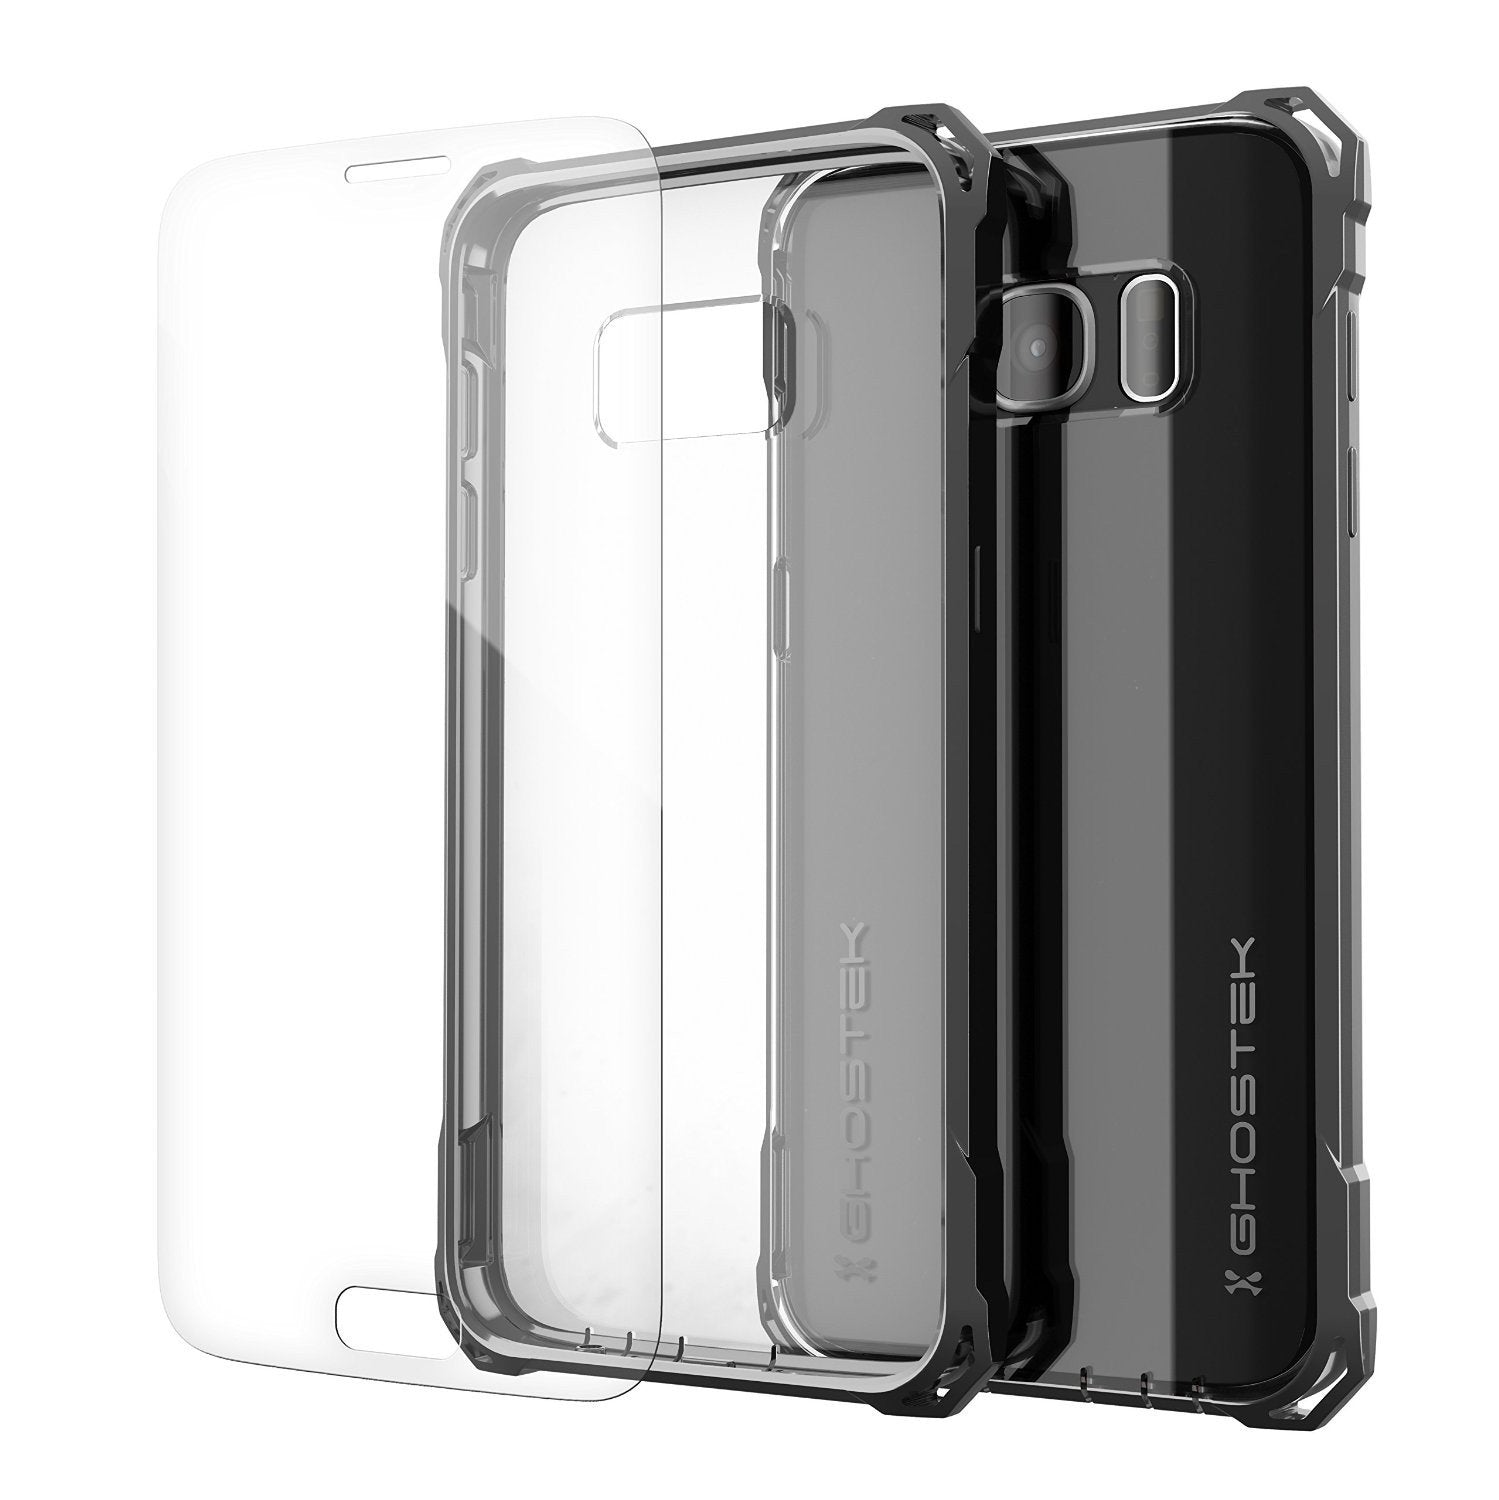 Galaxy S7 Case, Ghostek® Covert Dark Grey Series Premium Impact Cover | Lifetime Warranty Exchange - PunkCase NZ